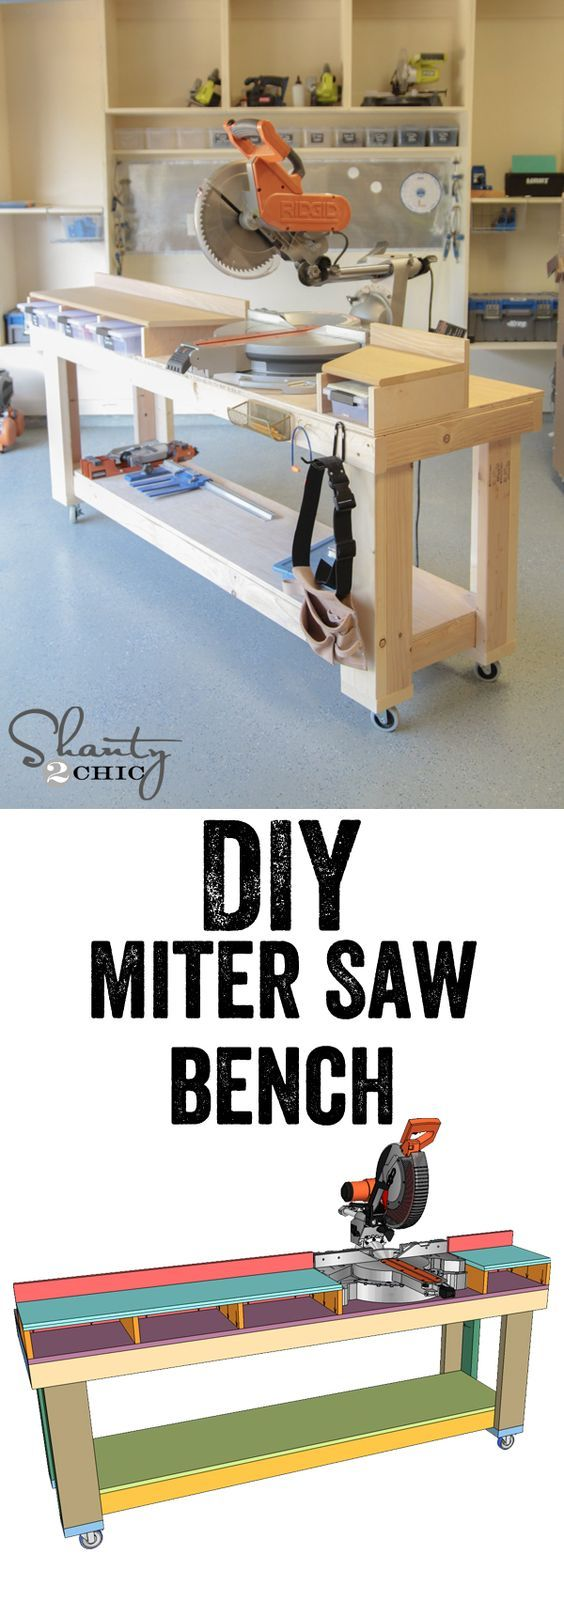 Free Plans...DIY Miter Saw Bench! Plans for the workbench and the miter saw station! www.shanty-2-chic.com: